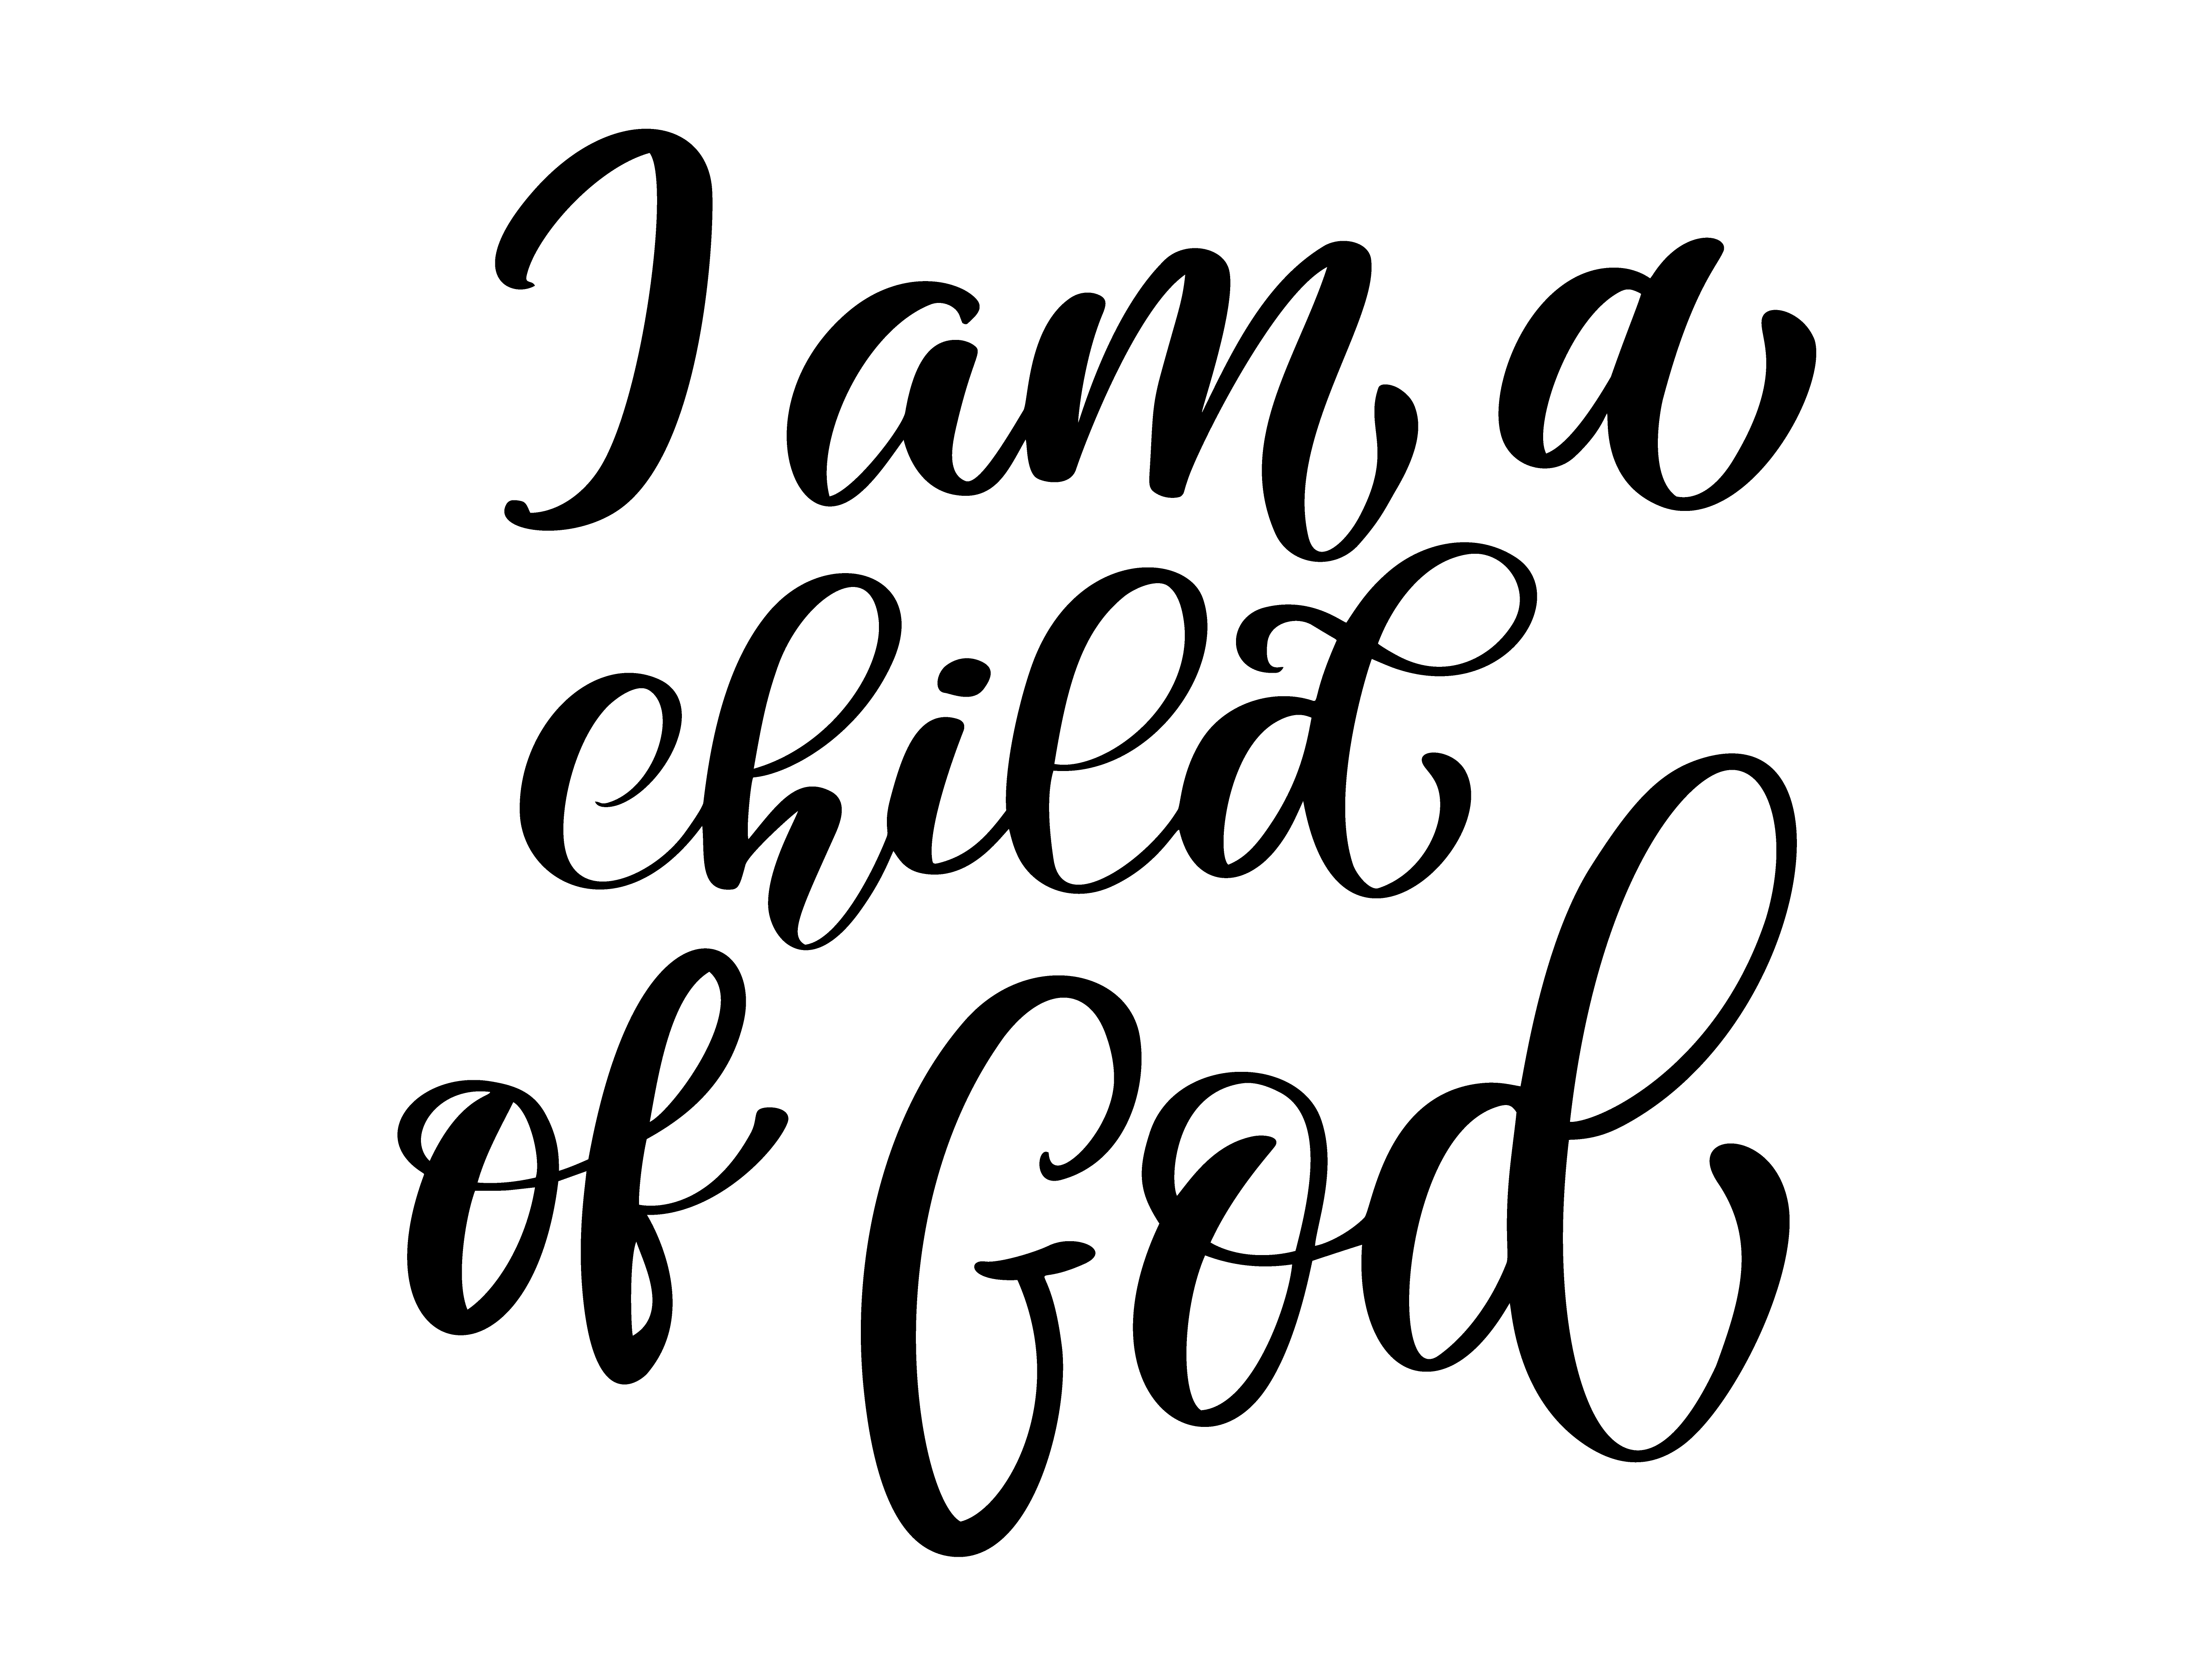 I am a child of God christian quote in Bible text ...